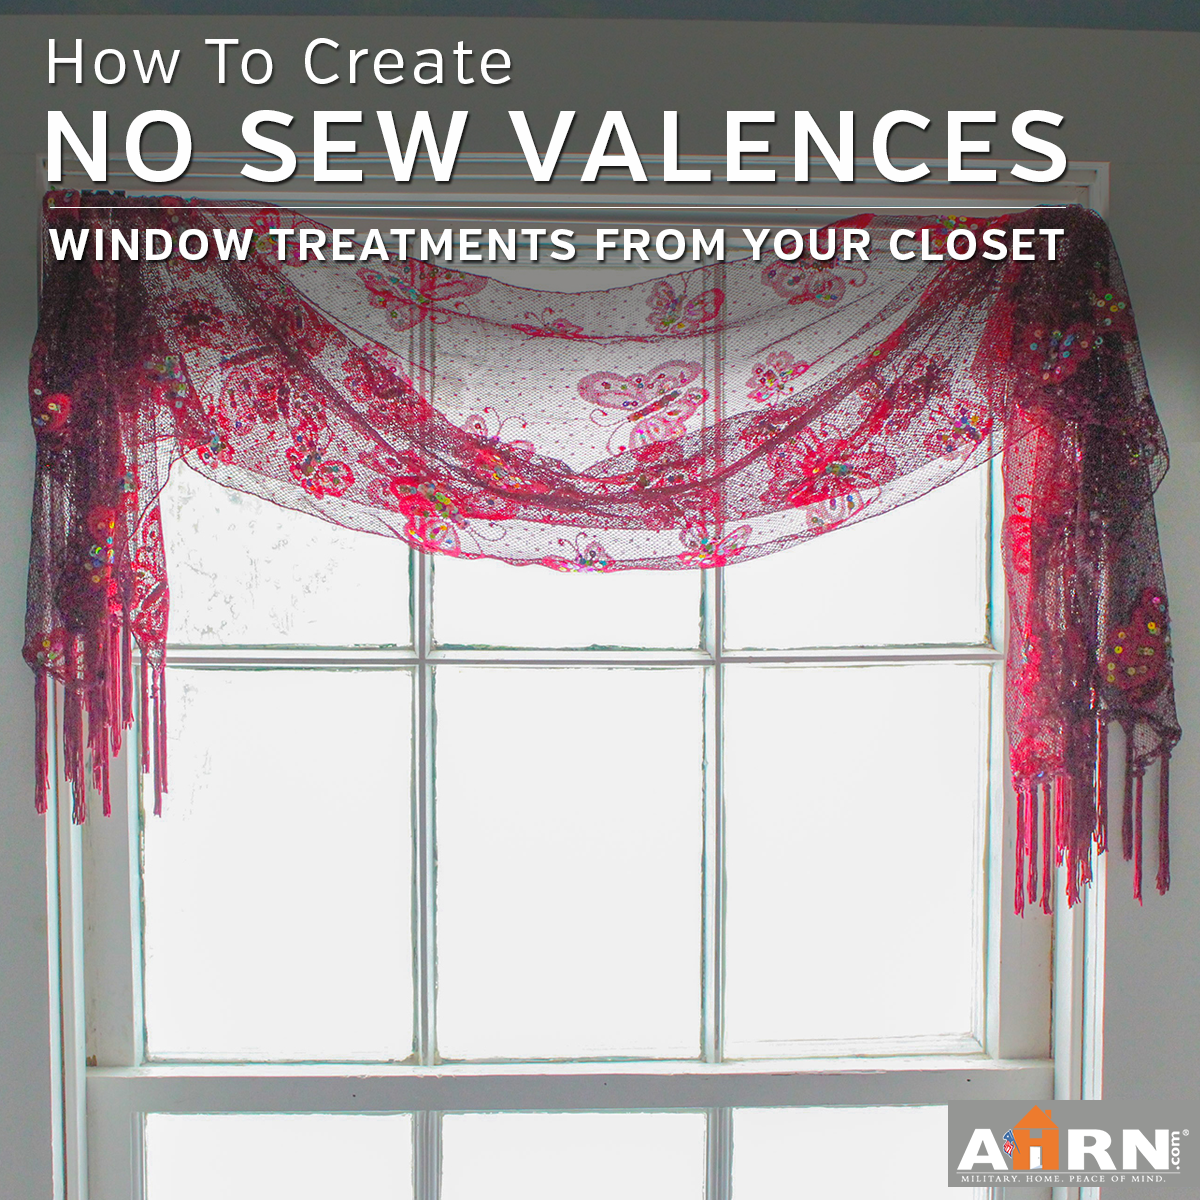 Valances Window Treatments No-Sew Window Treatments: Creative Valances from Your Own Wardrobe